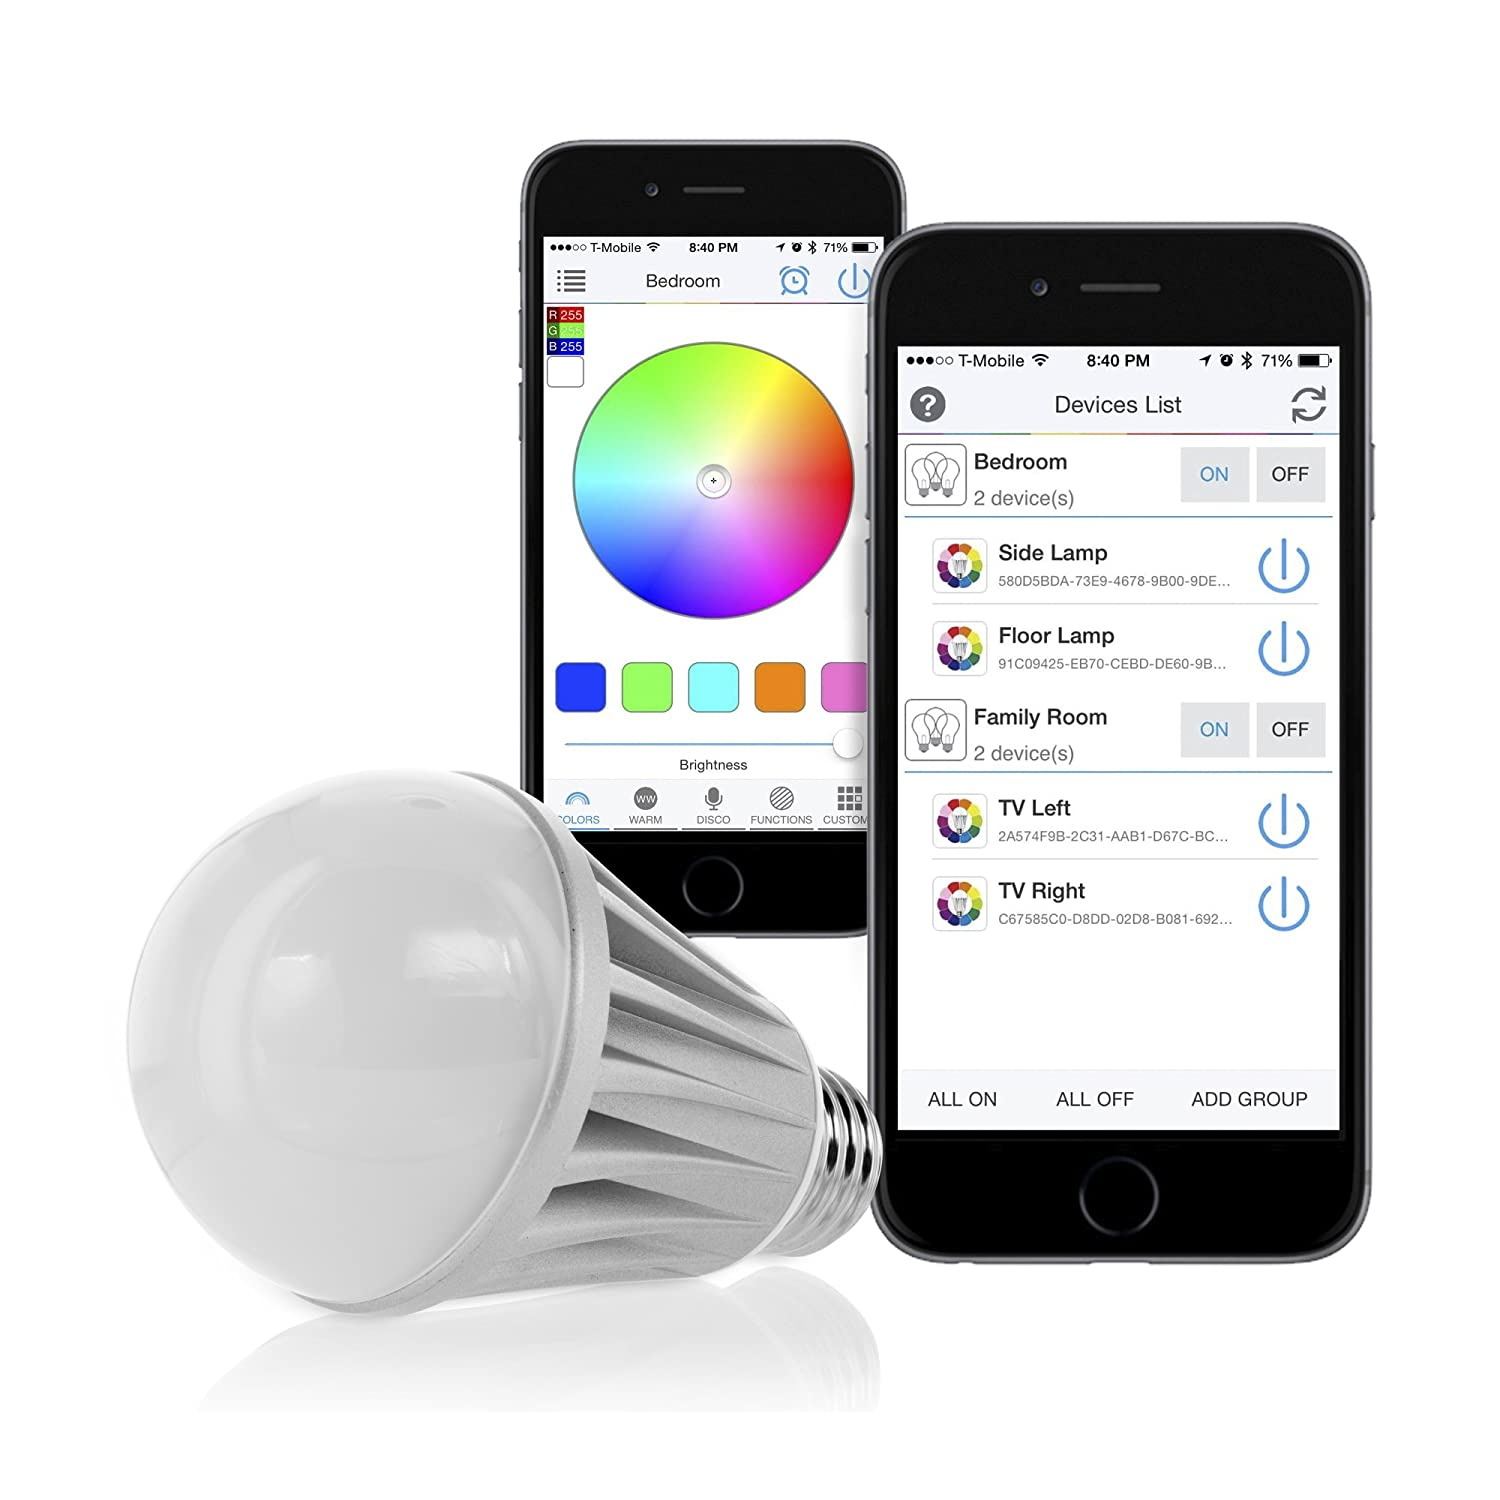 Flux Bluetooth LED Smart Bulb - Wireless Multi Color Changing Light For  Kitchen, Bedroom- App Controlled Sunrise Wake Up Light - Sunset Sleeping  Light ...